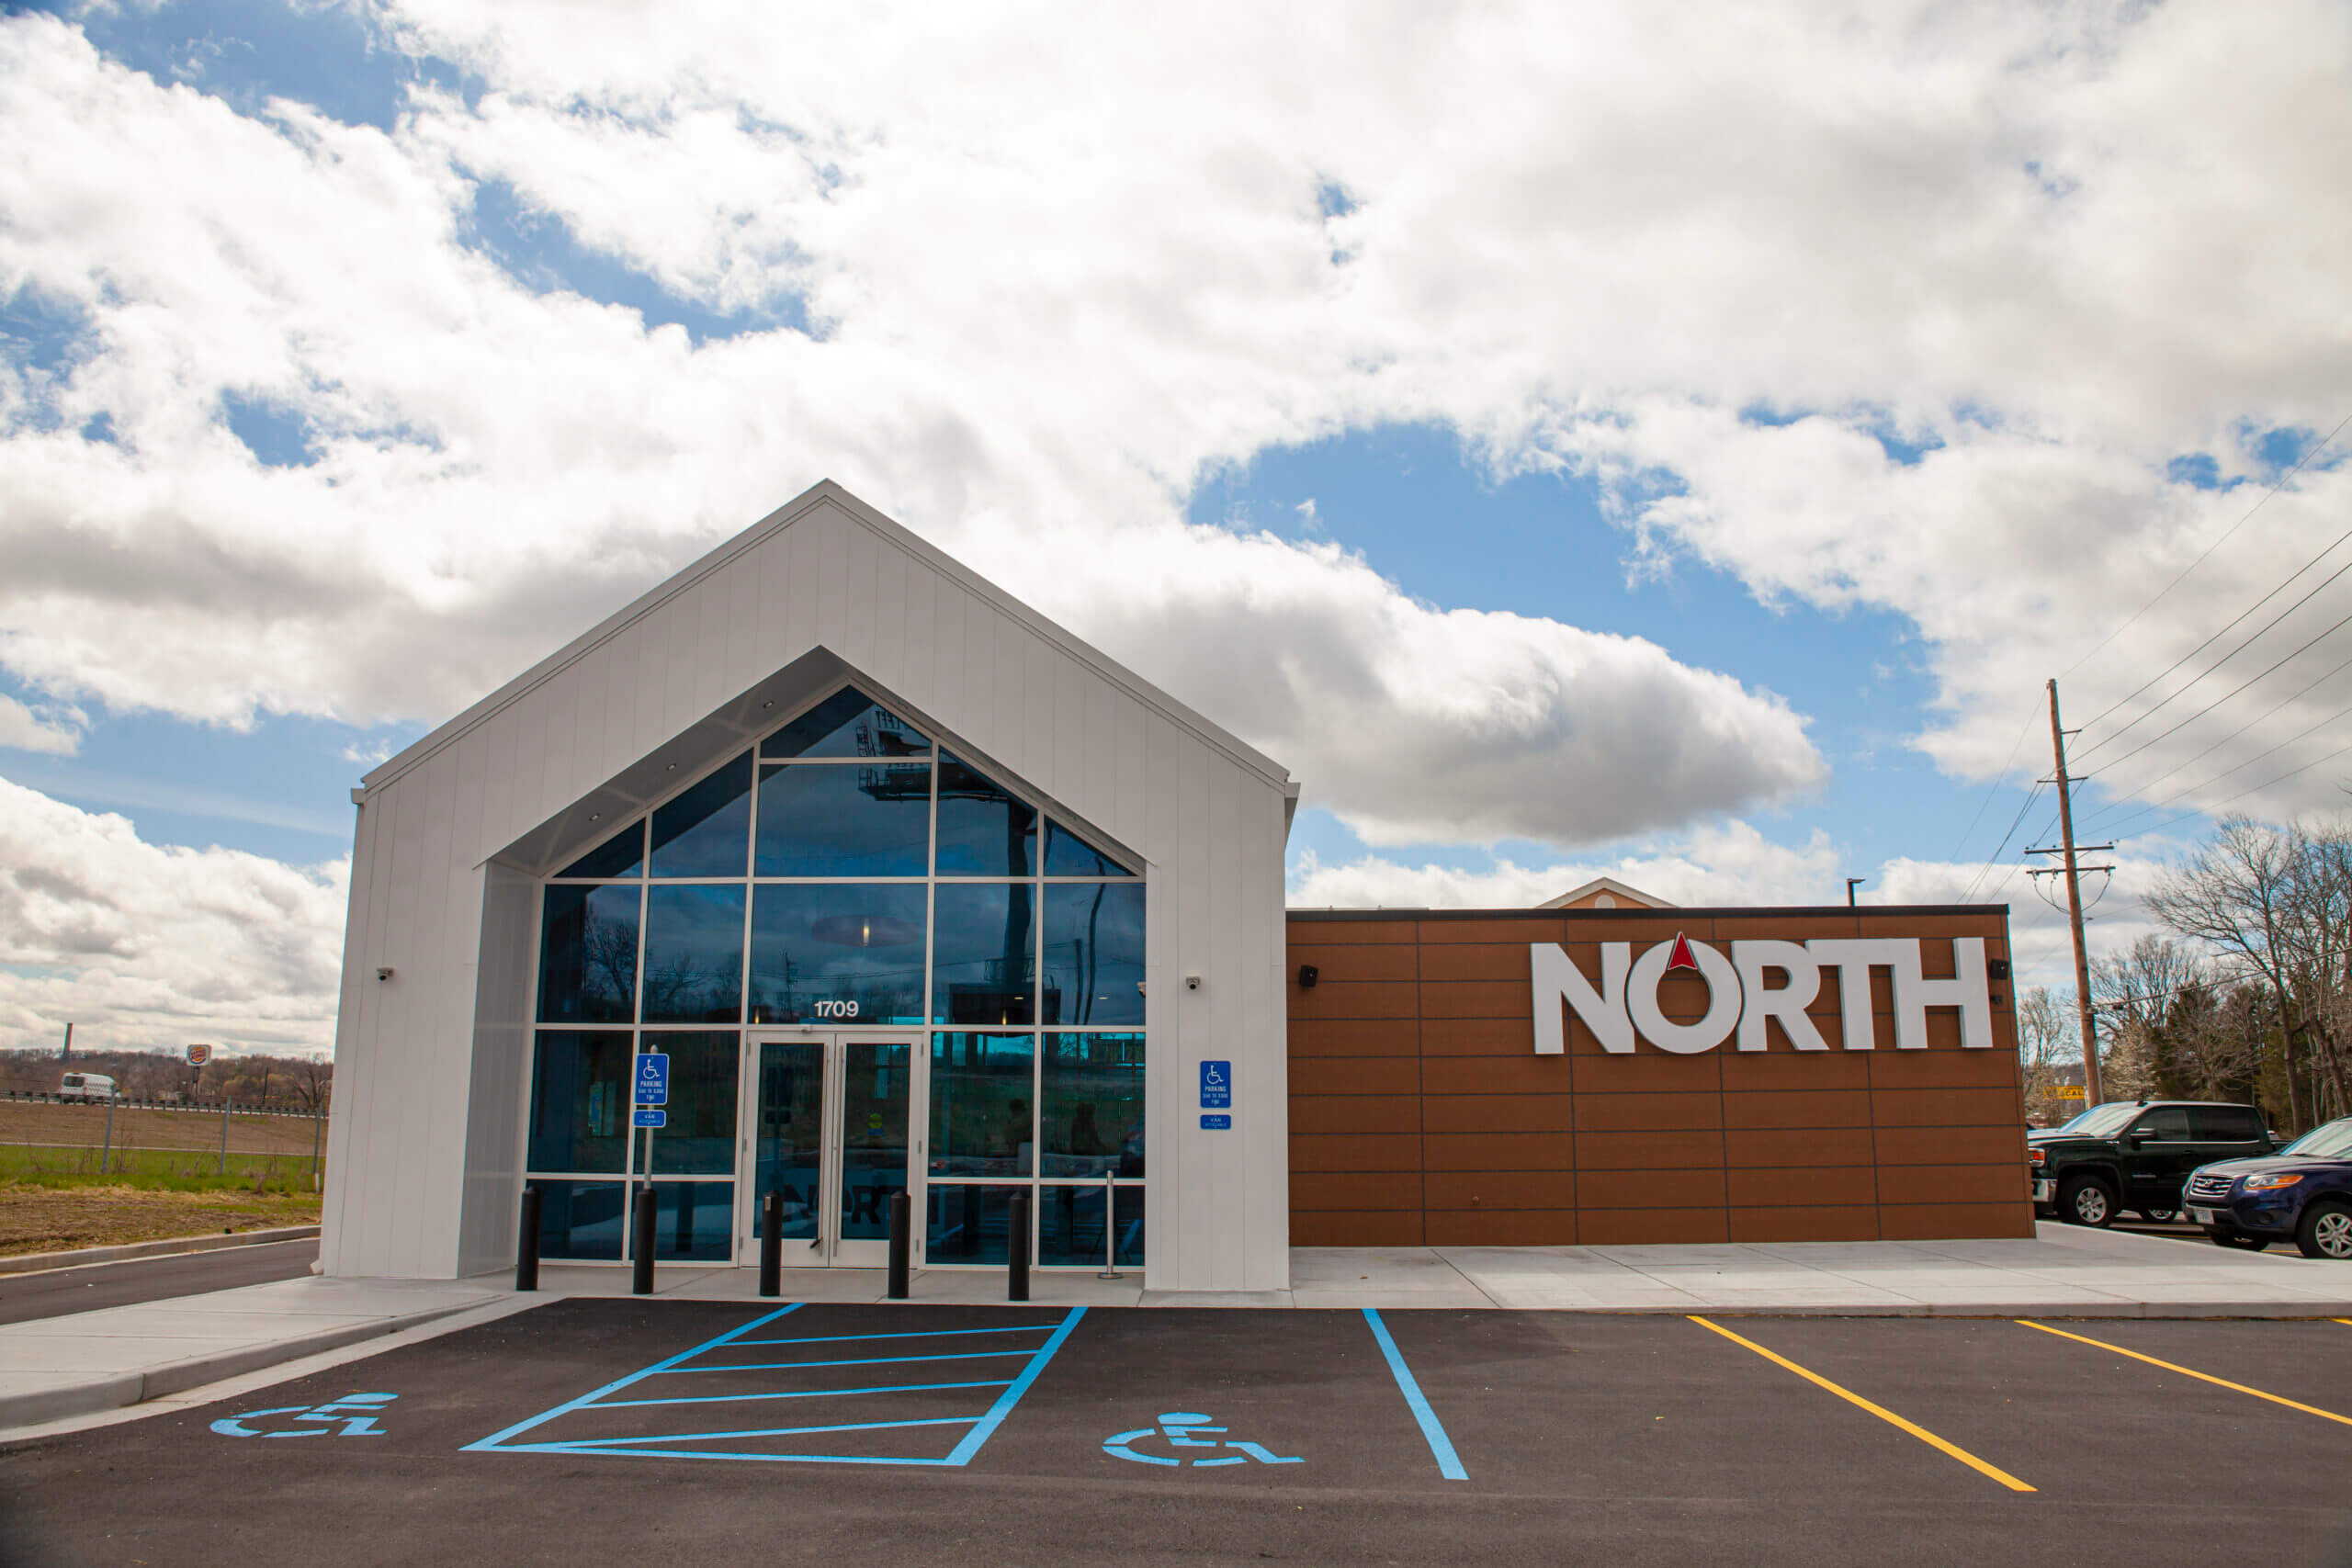 North Medical dispensary building exterior and parking lot